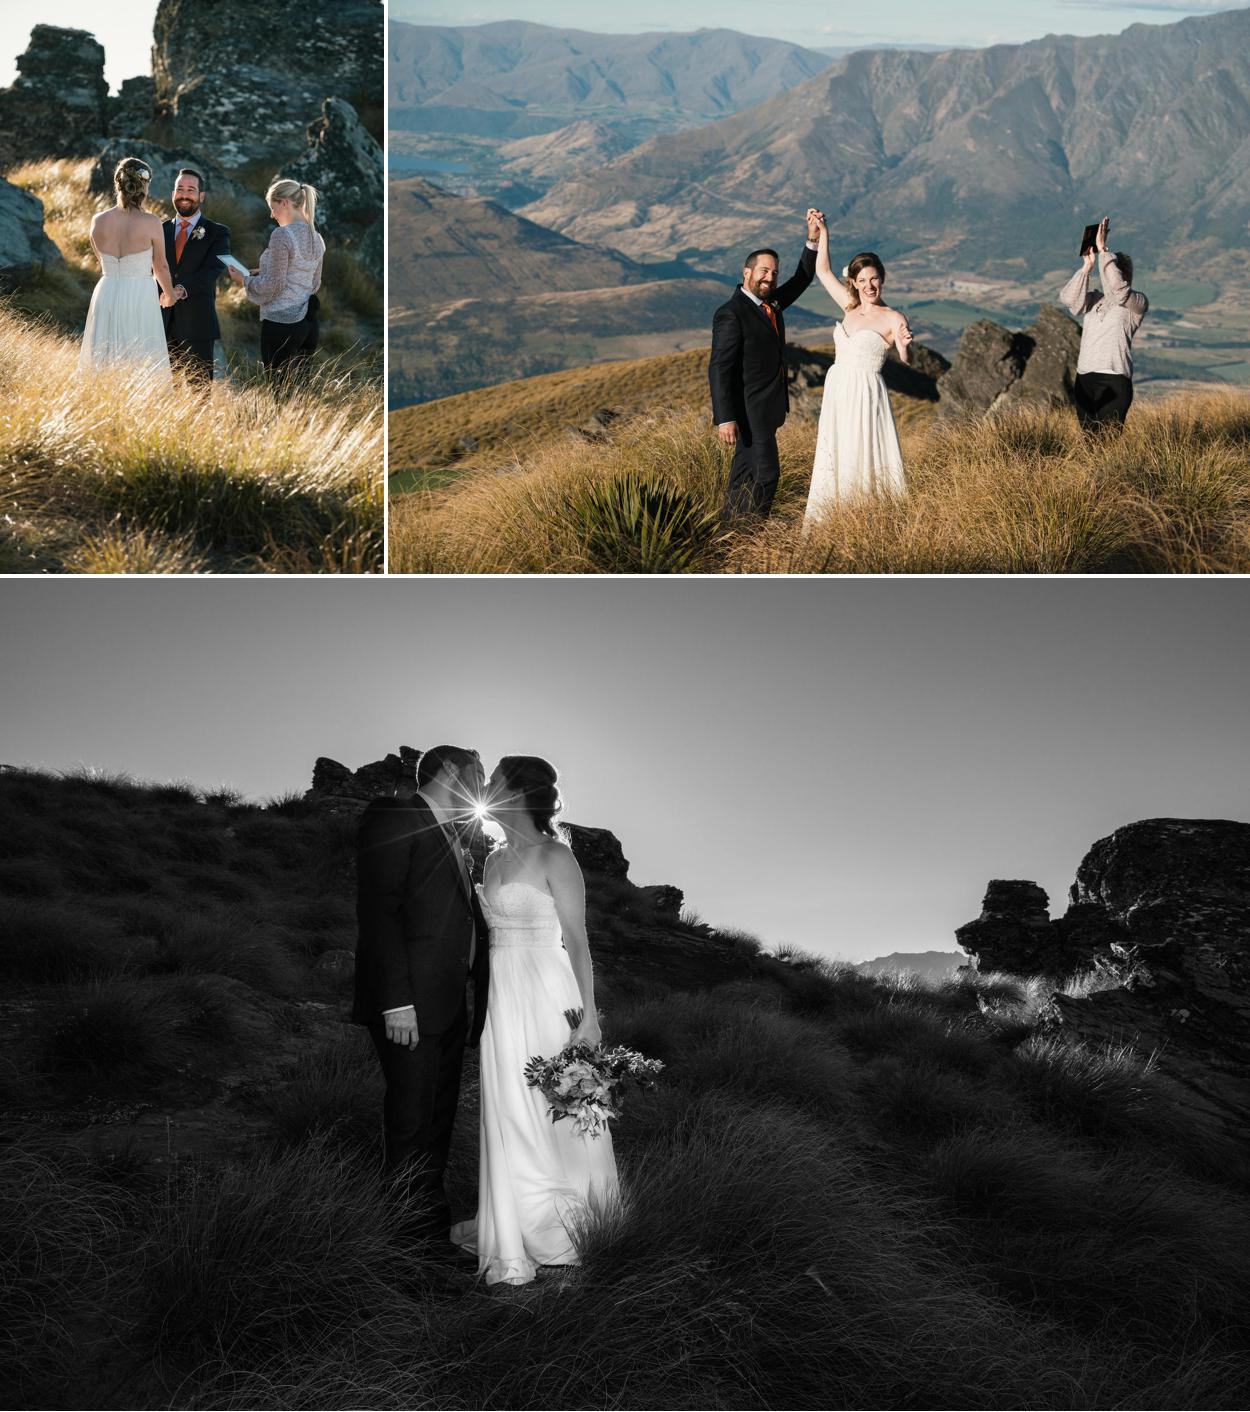 sunset mountain wedding planner QUeenstown